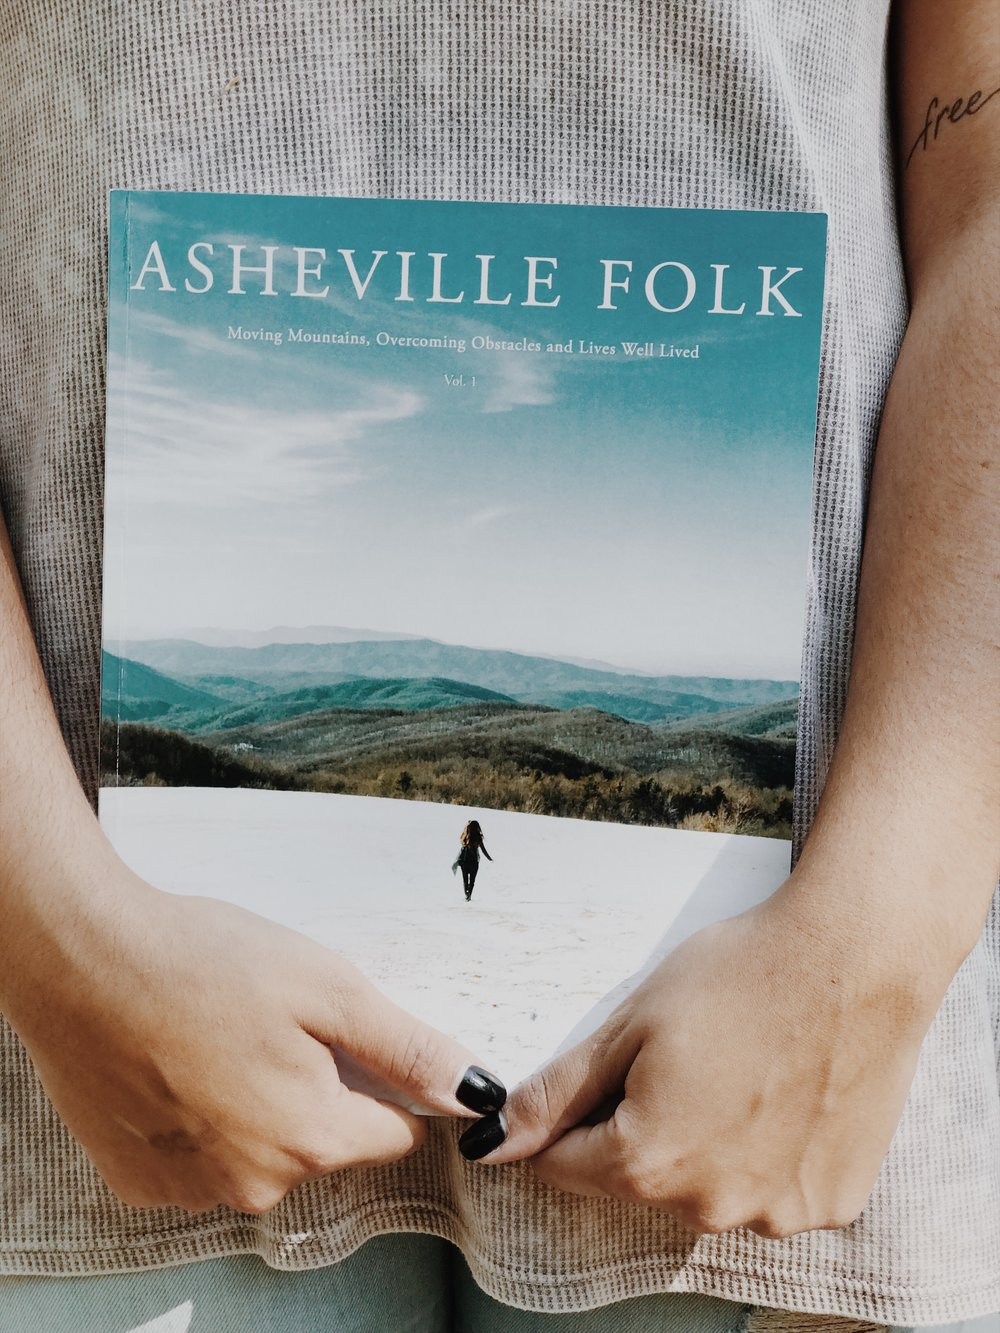 Asheville Folk Volume 1: Order Now. Christinaforet.com ashevillefolk.com